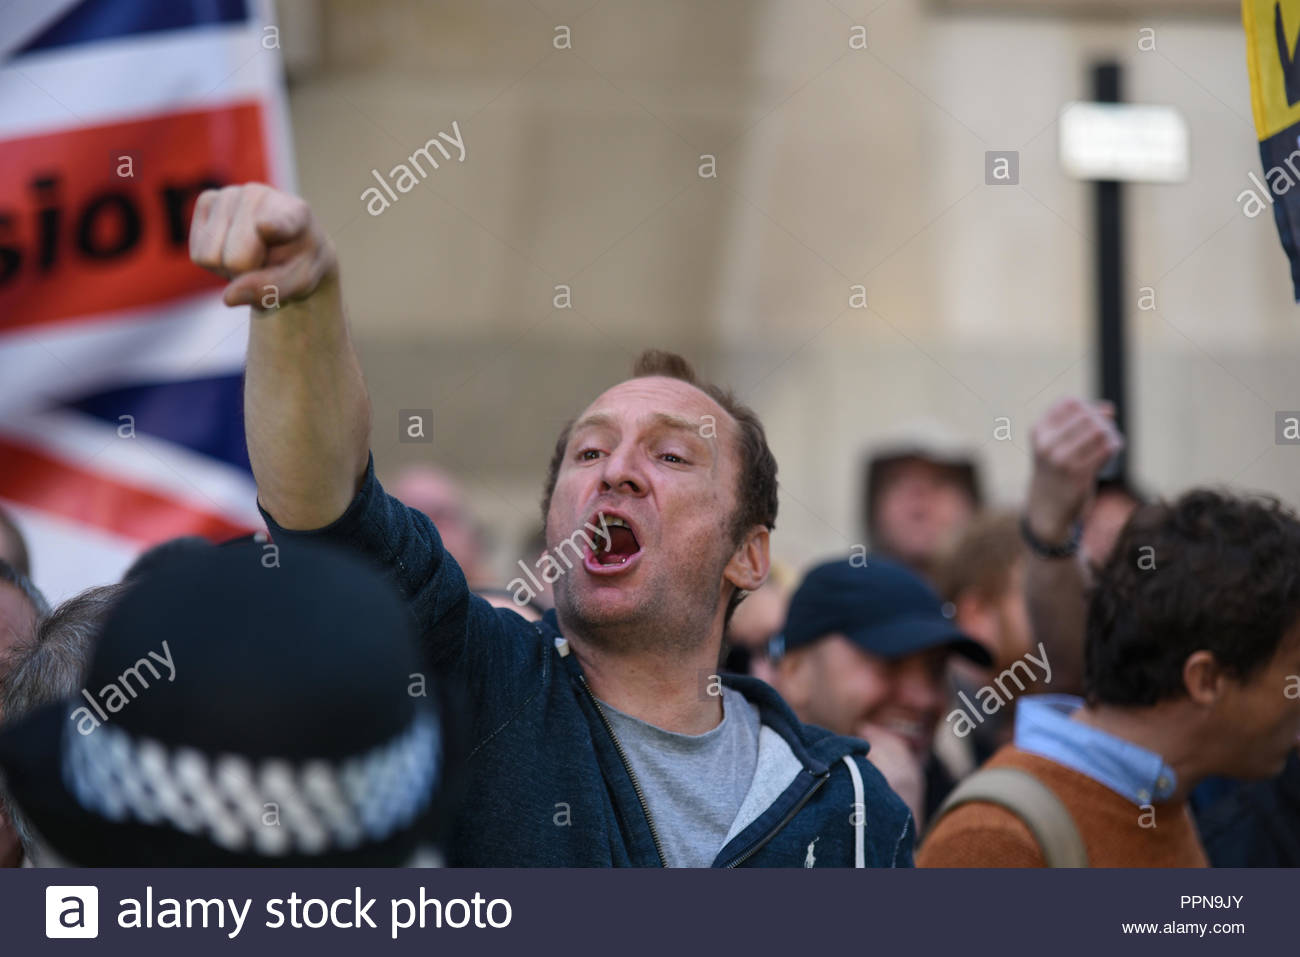 old-bailey-london-uk-27th-sept-2018-stephen-yaxley-lennon-also-known-as-tommy-robinson-appeared-in-the-central-criminal-court-old-bailey-accused-of-contempt-of-court-arising-from-his-arrest-when-filming-outside-the-court-building-in-leeds-the-trial-has-become-the-focus-of-his-supporters-and-anti-fascist-and-anti-racist-groups-who-demonstrated-outside-credit-avpics-alamy-live-news-PPN9JY.jpg